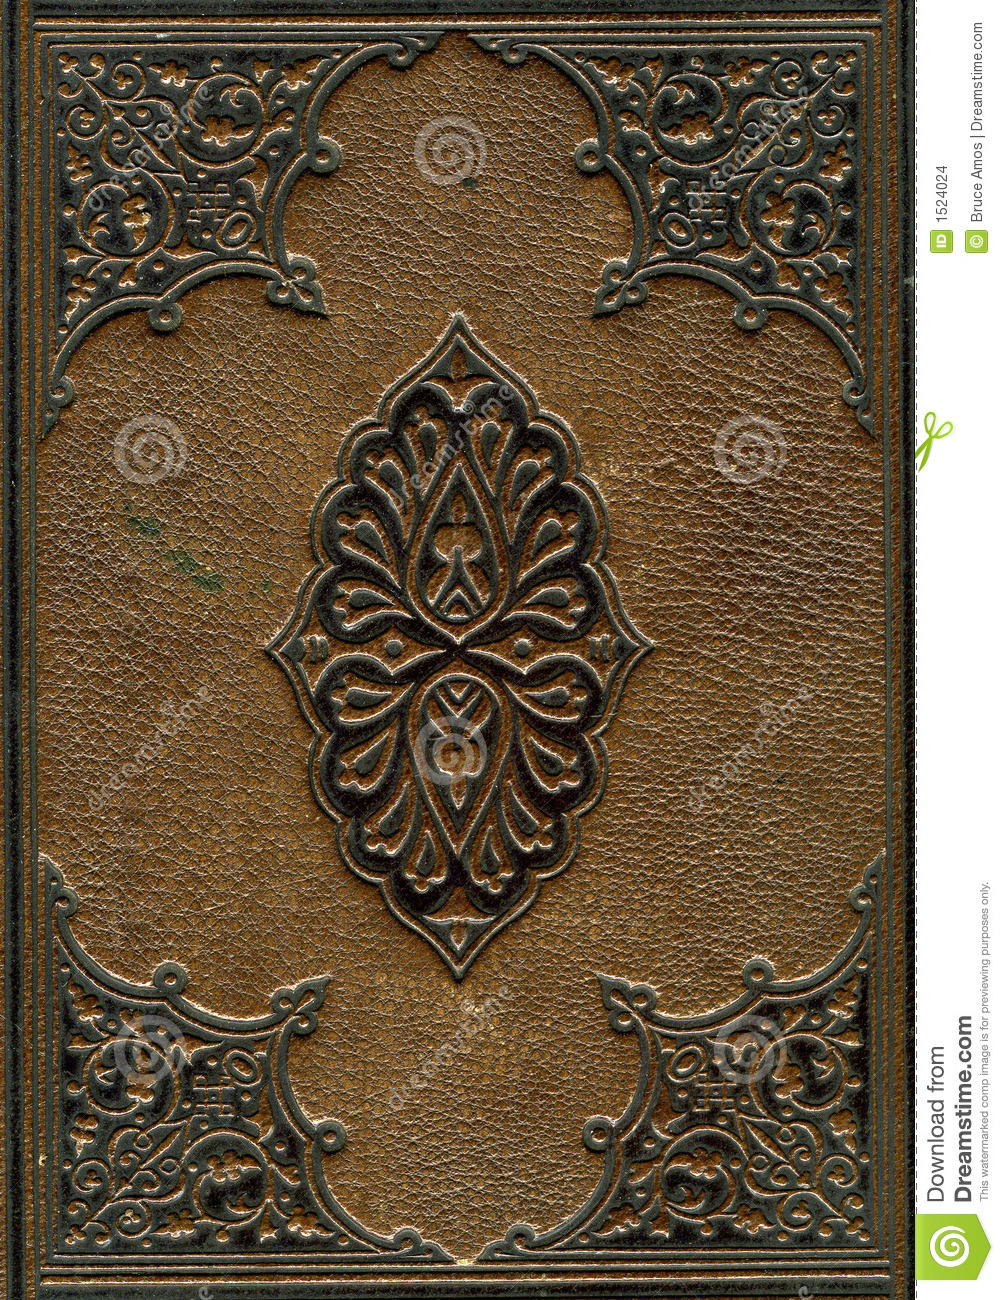 Photo Old Book Cover Tutorial : Old leather bound bible stock photo image of stain paper